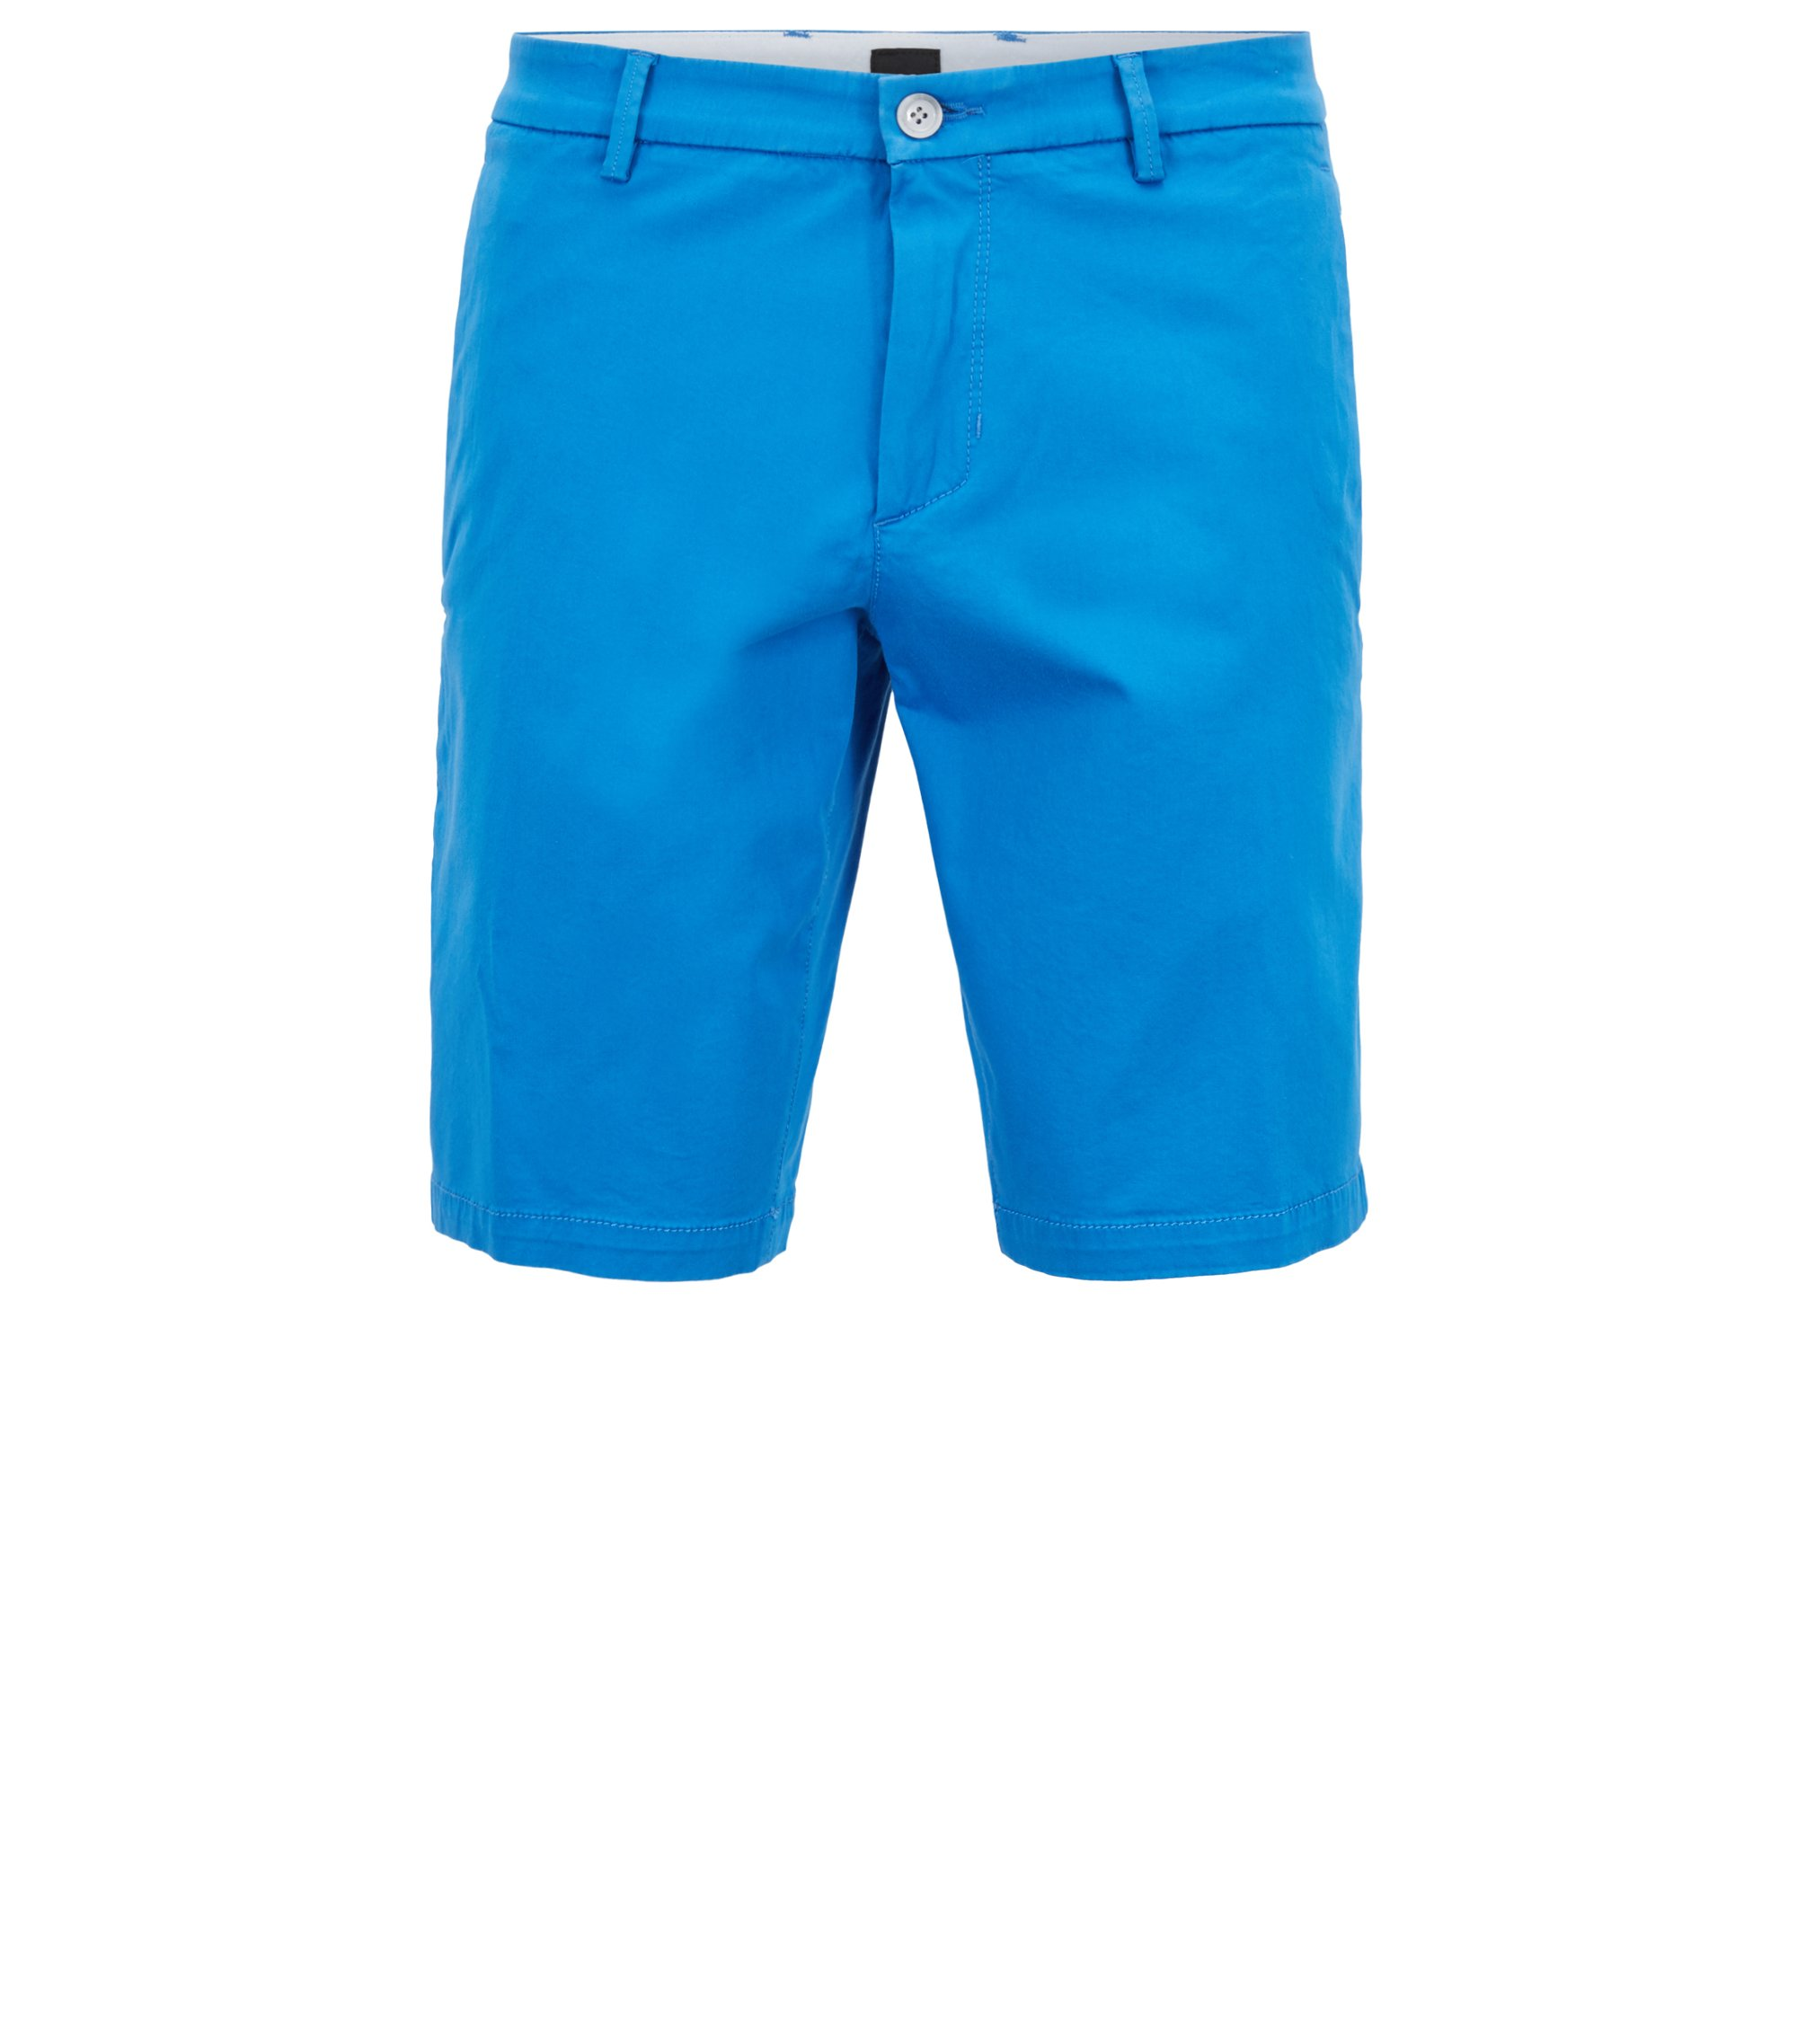 Short Slim Fit en satin stretch, Bleu